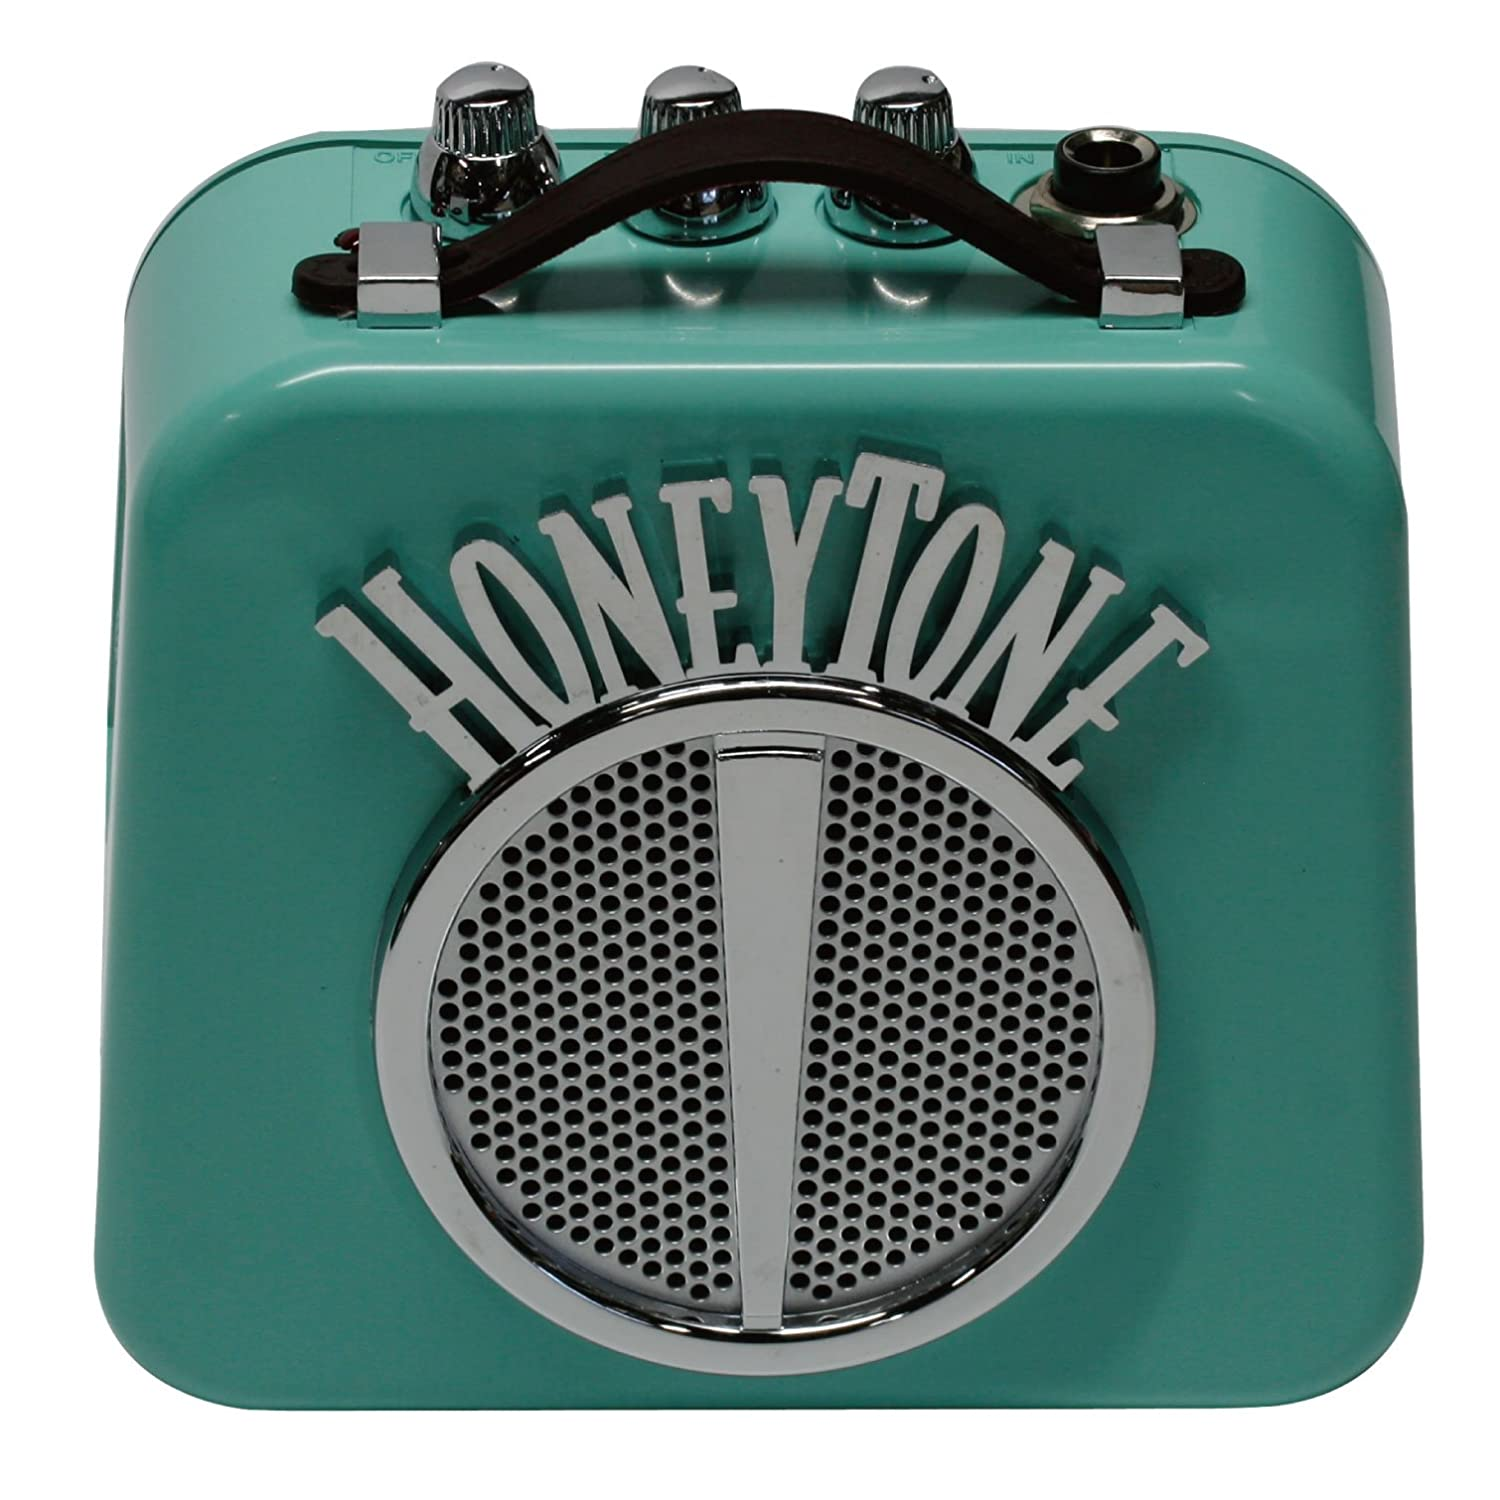 Danelectro Honeytone Guitar Mini Amp Black Friday Deal 2019